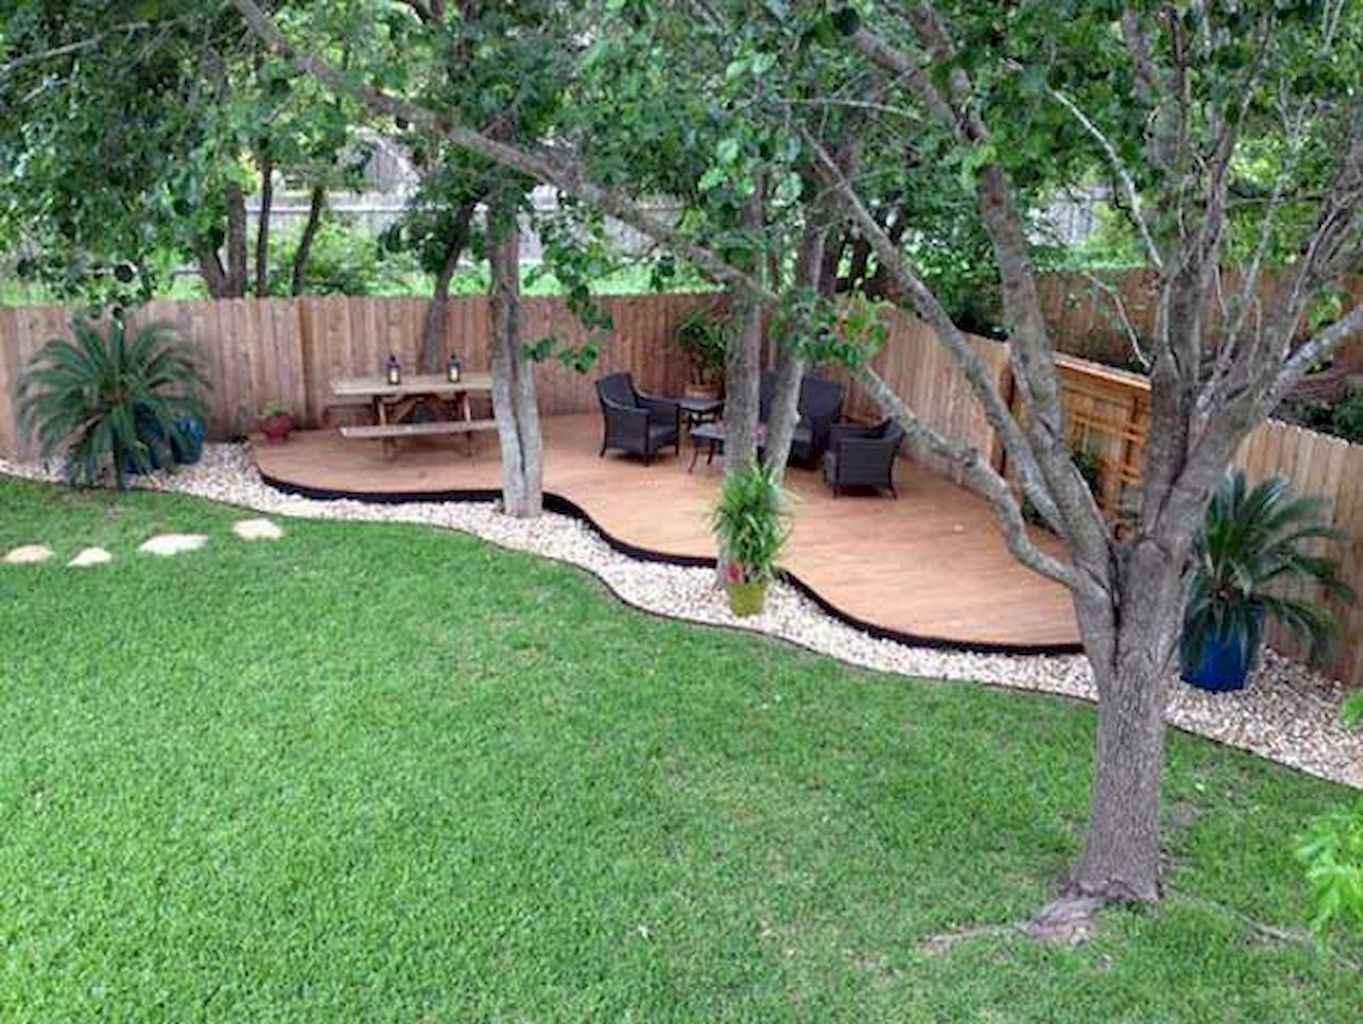 60 Fresh Backyard Landscaping Design Ideas On A Budget within 13 Awesome Concepts of How to Build Backyard Landscape Design Ideas Pictures